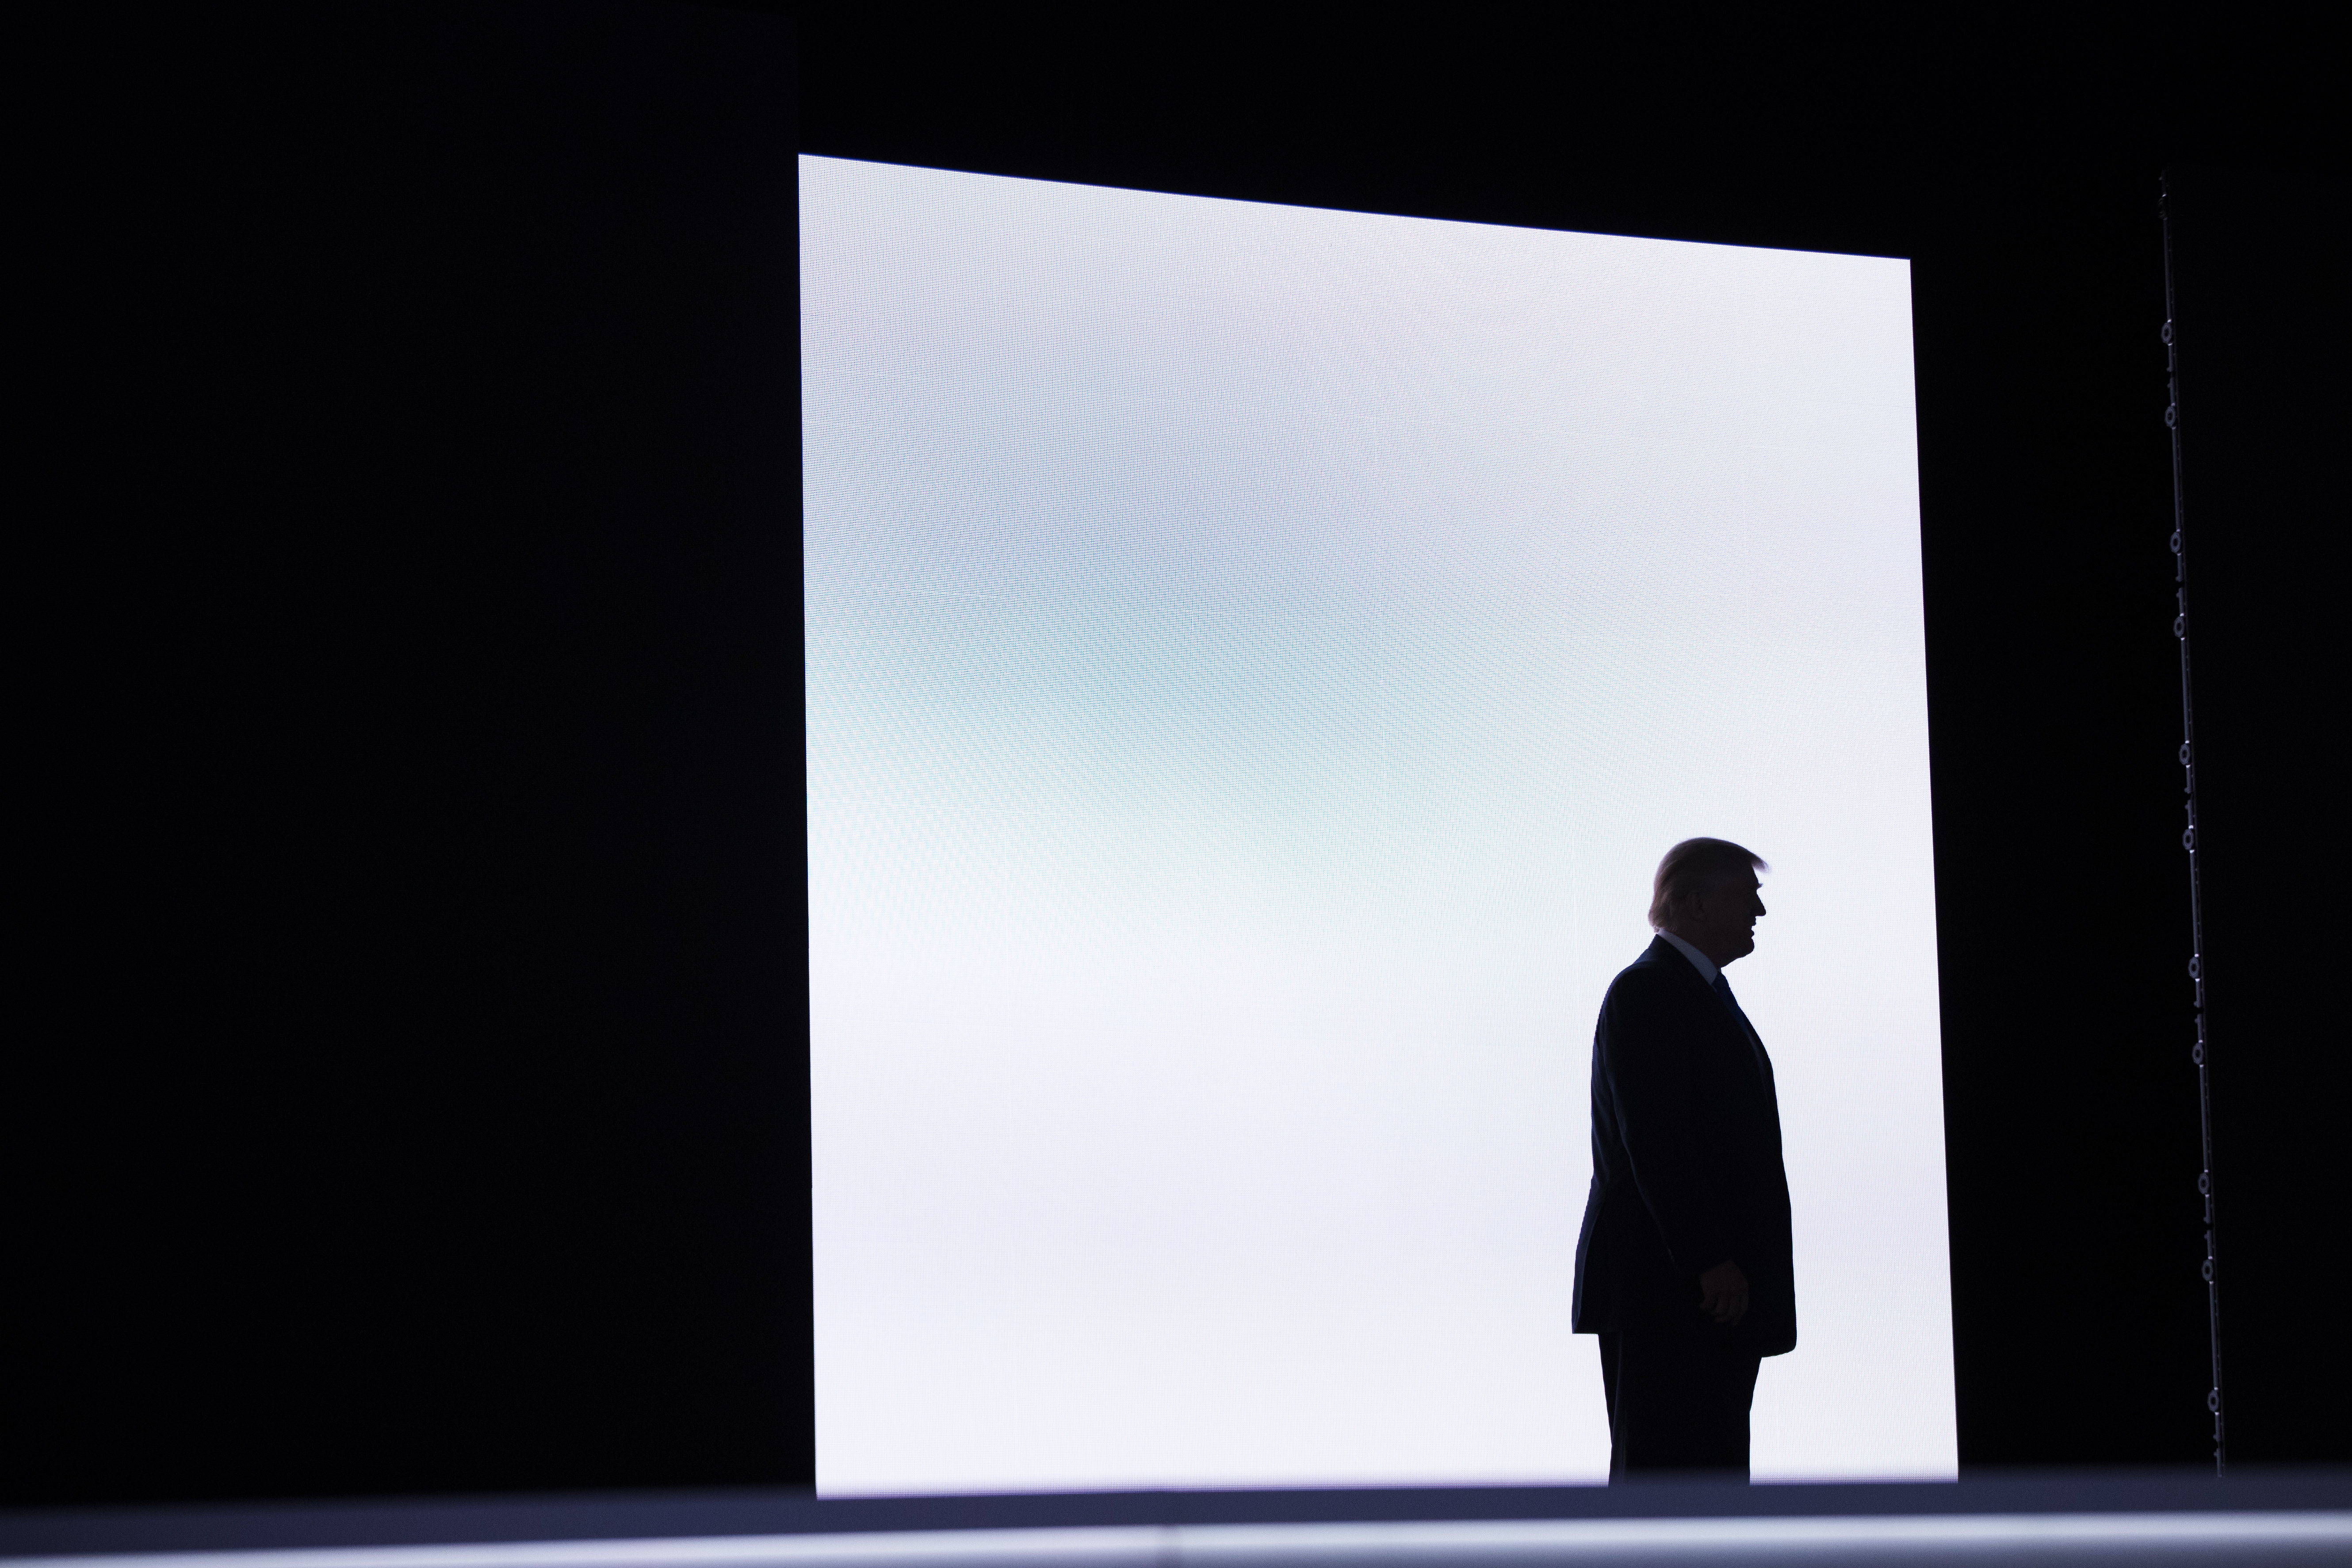 Republican presidential candidate Donald Trump arrives to introduce his wife Melania during the Republican National Convention, Monday, July 18, 2016, in Cleveland.